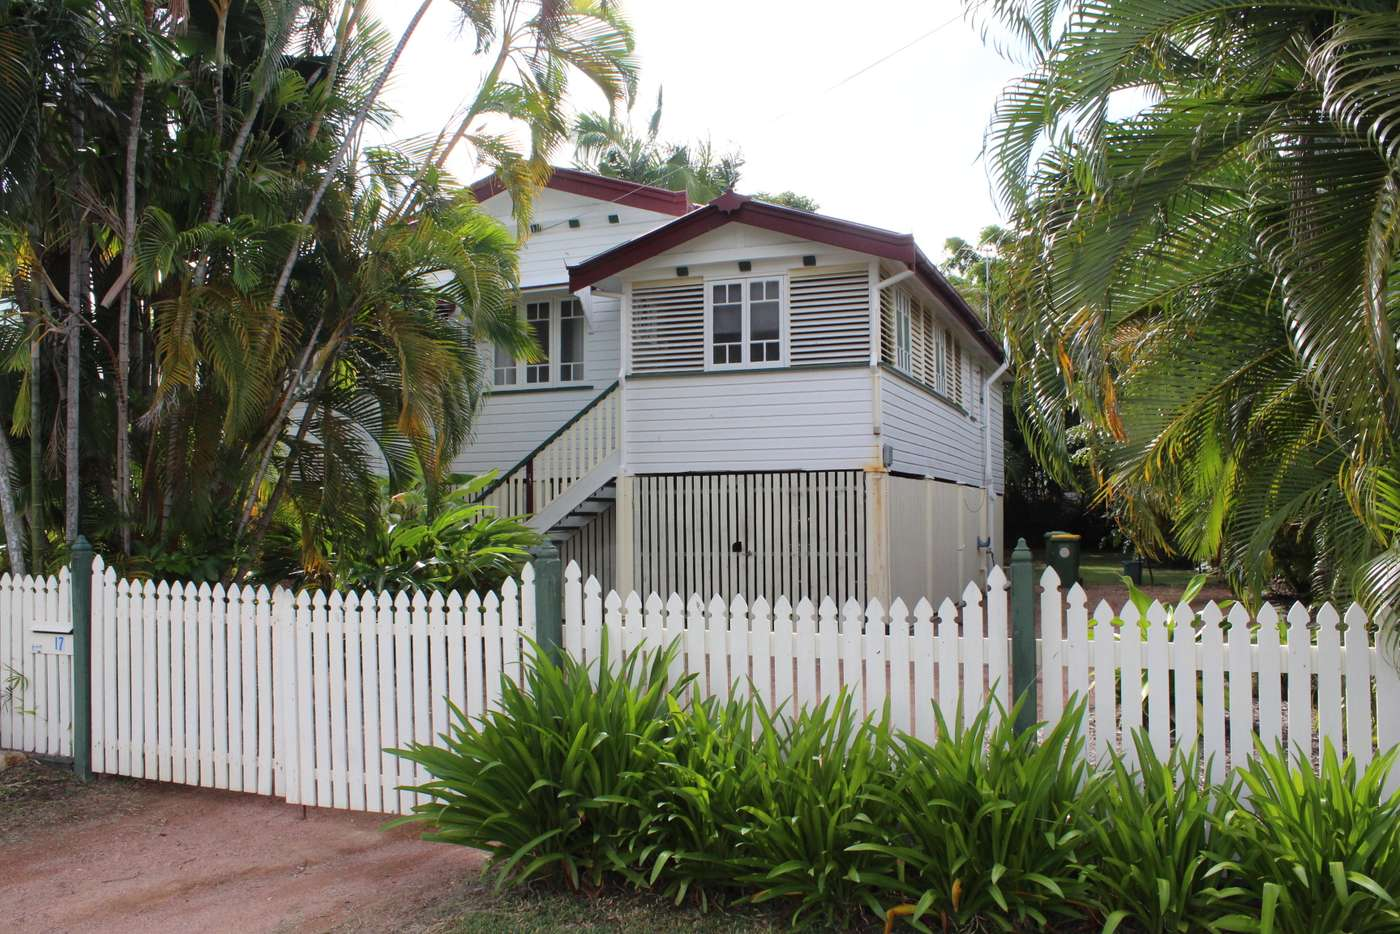 Main view of Homely house listing, 17 Townsville St, West End QLD 4810